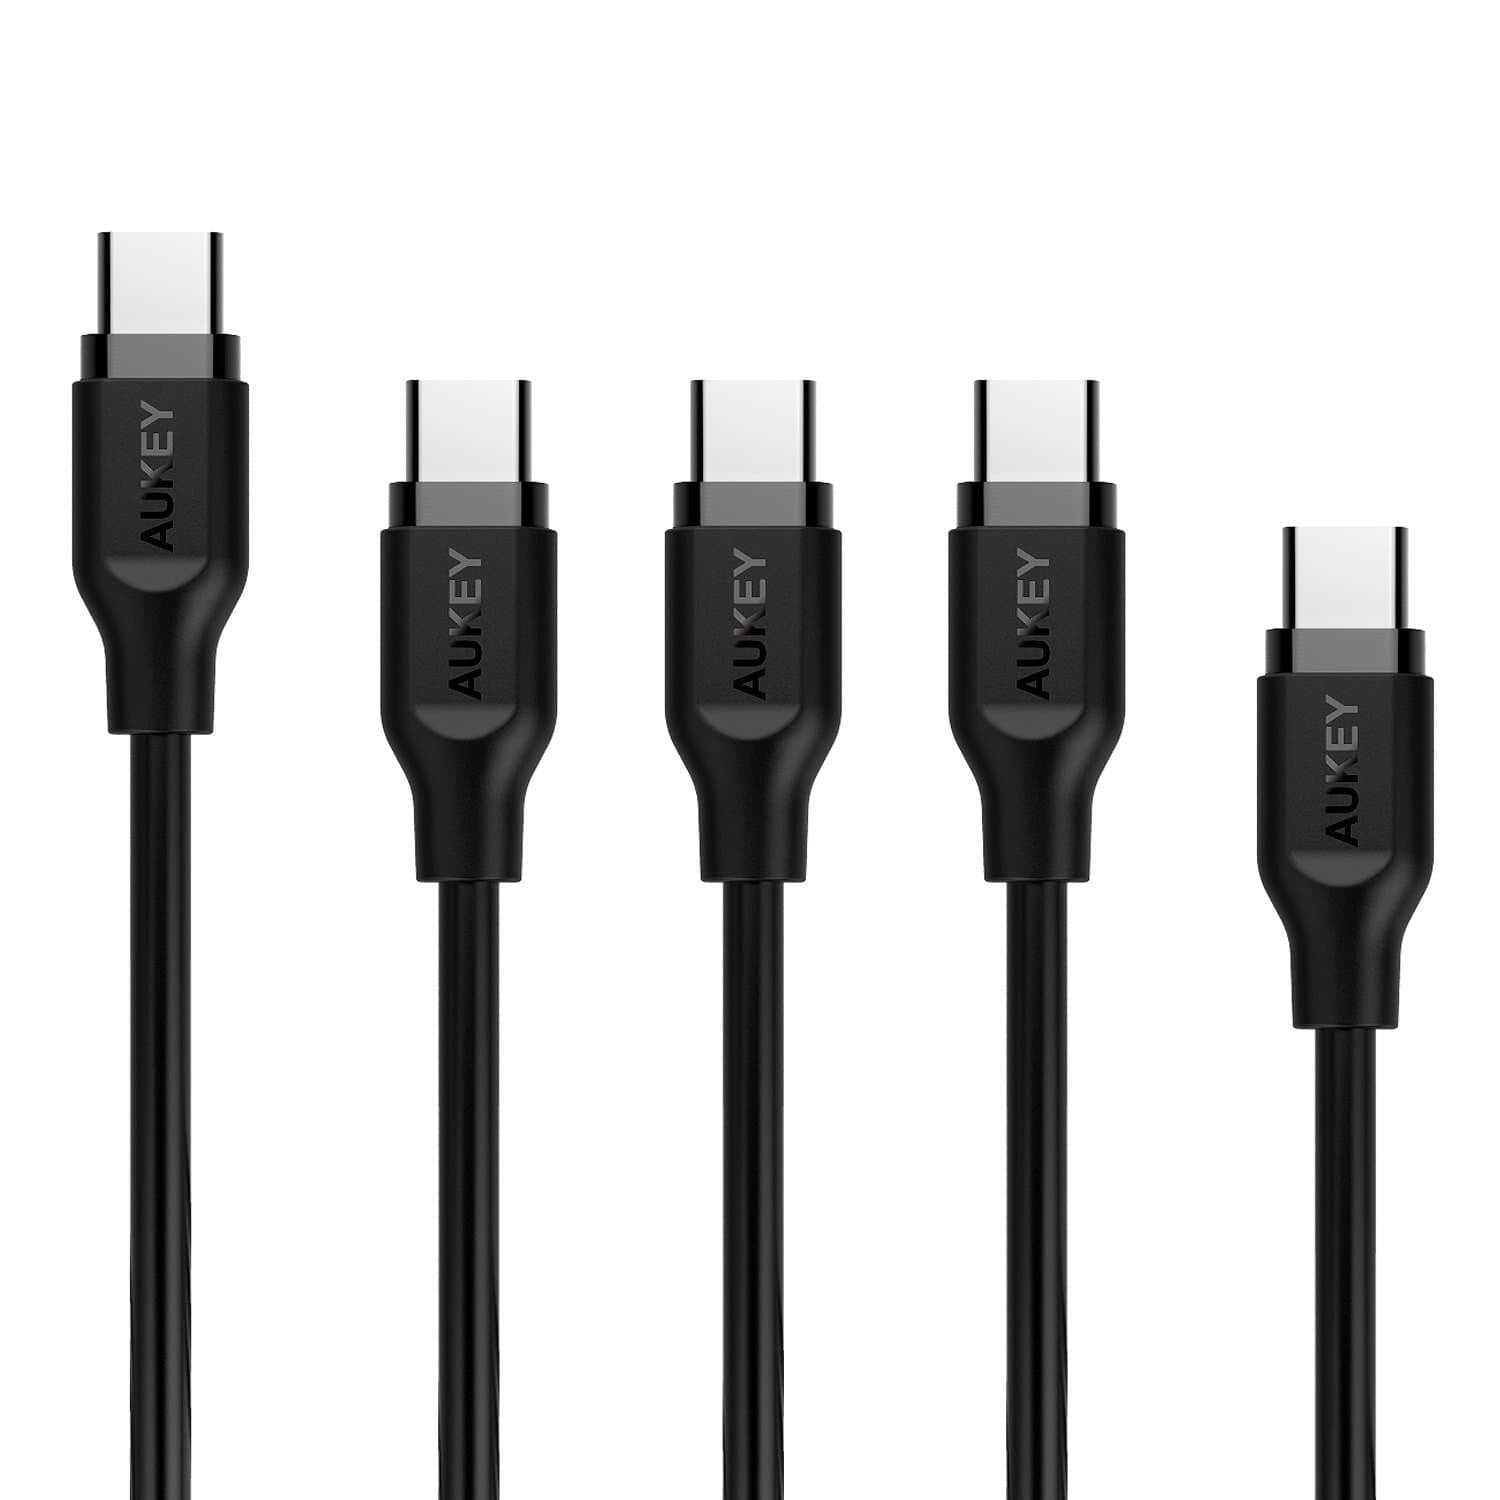 CB-CMD5 - USB C Cable to USB 3.0 A 1m X 3 2m X 1 30cm X 1 (5 Pack)